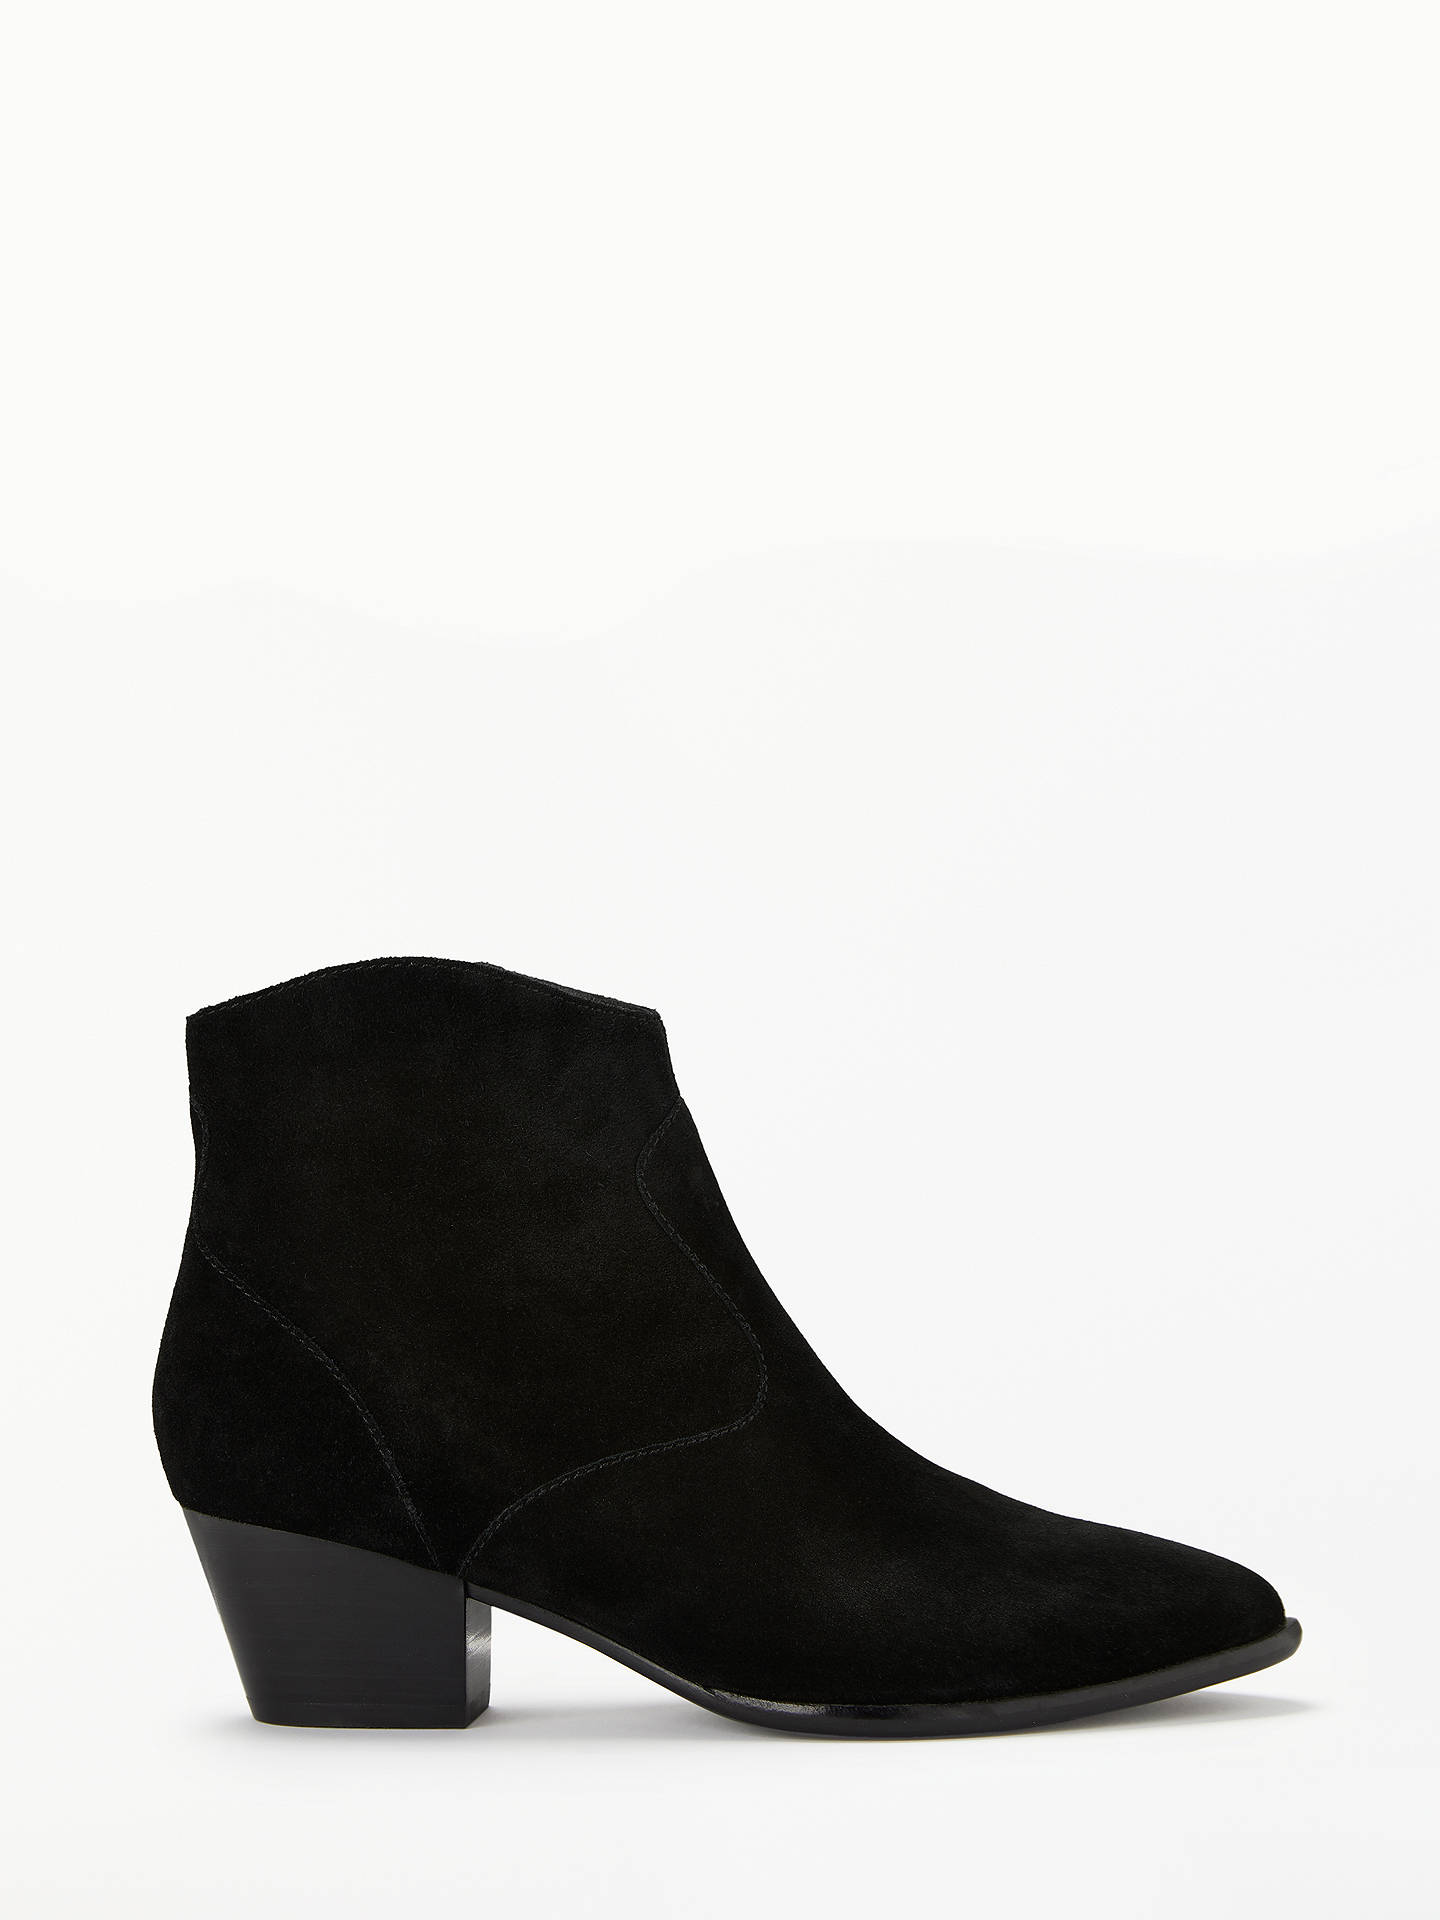 BuyAsh Heidi Block Heel Ankle Boots, Black Leather, 6 Online at johnlewis.com